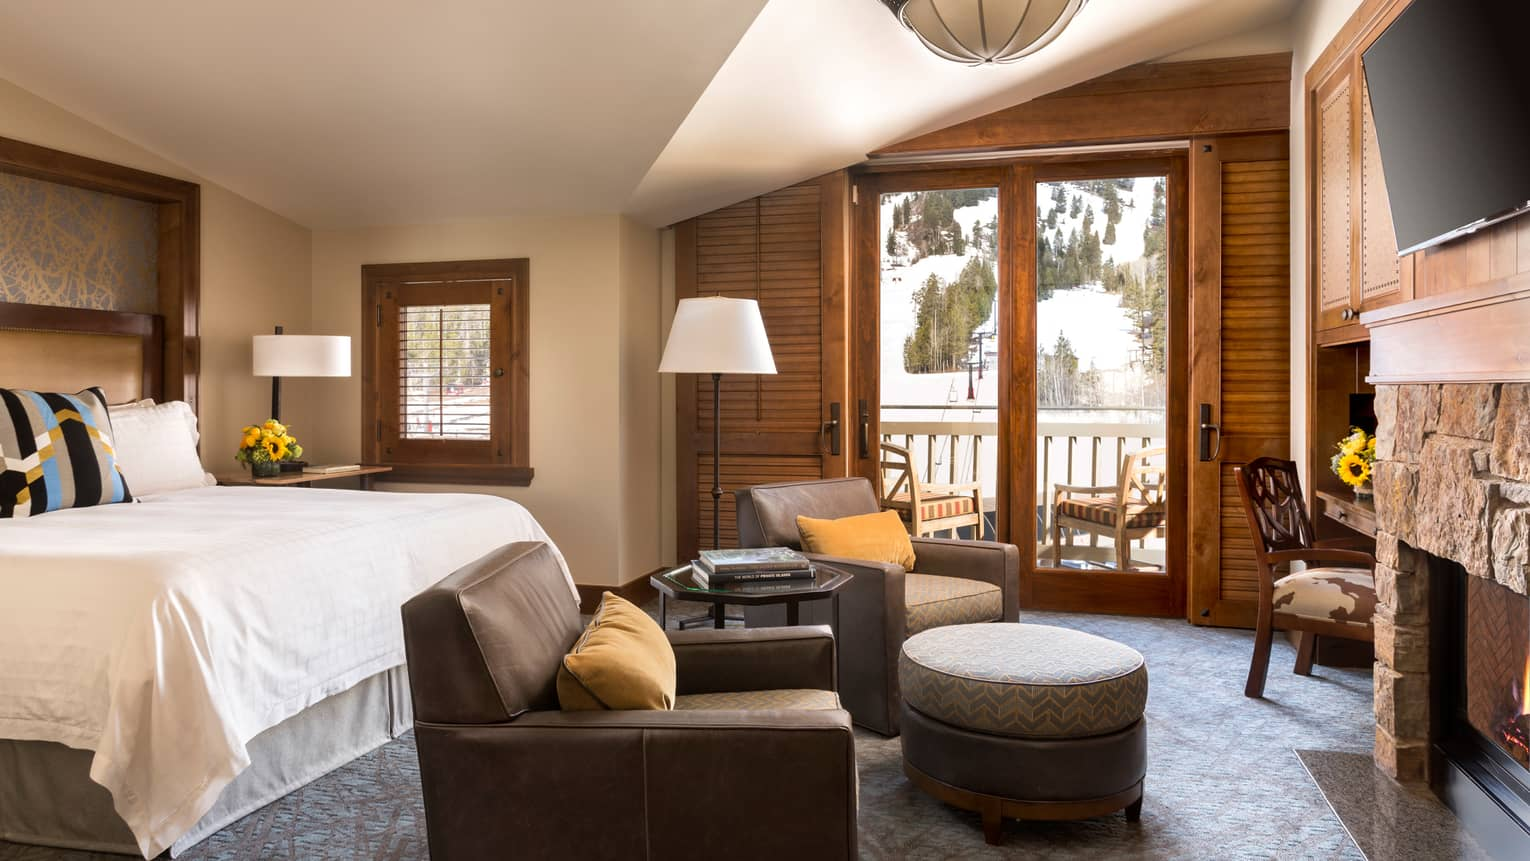 Mountain-View Room bed, large brown leather armchairs facing rustic stone fireplace